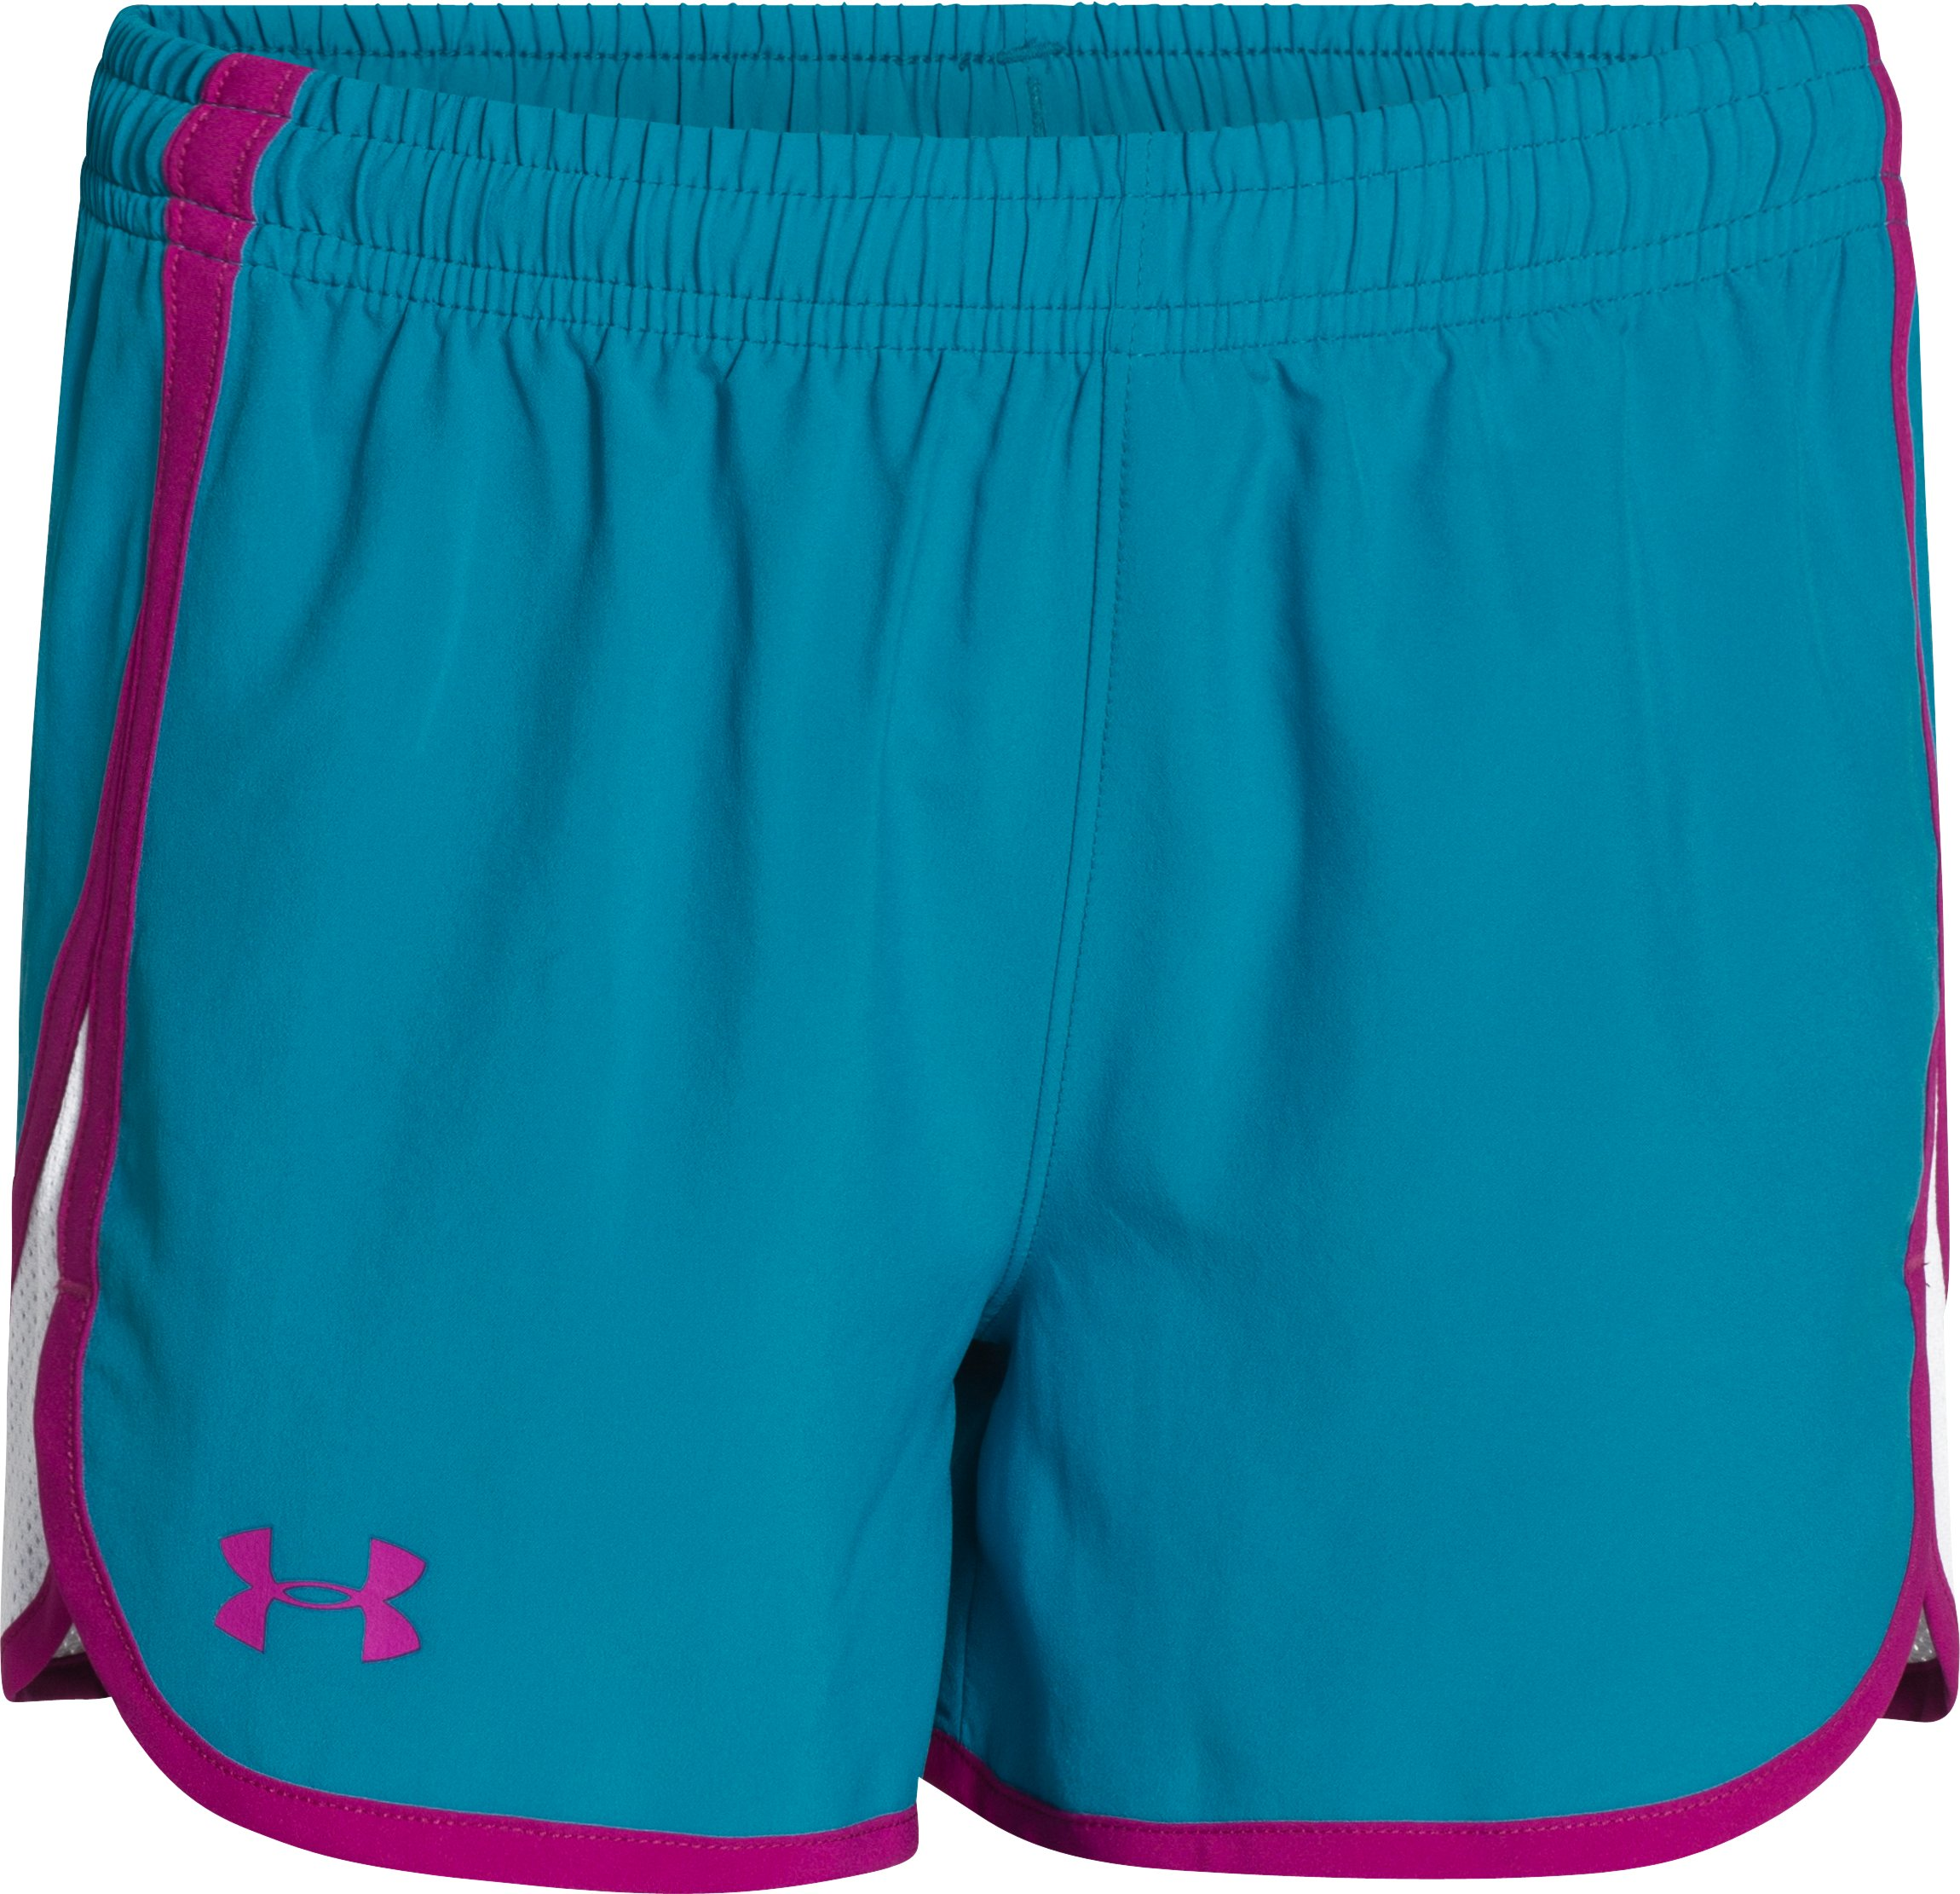 "Girls' UA Escape 3"" Shorts, TEAL ICE, zoomed image"